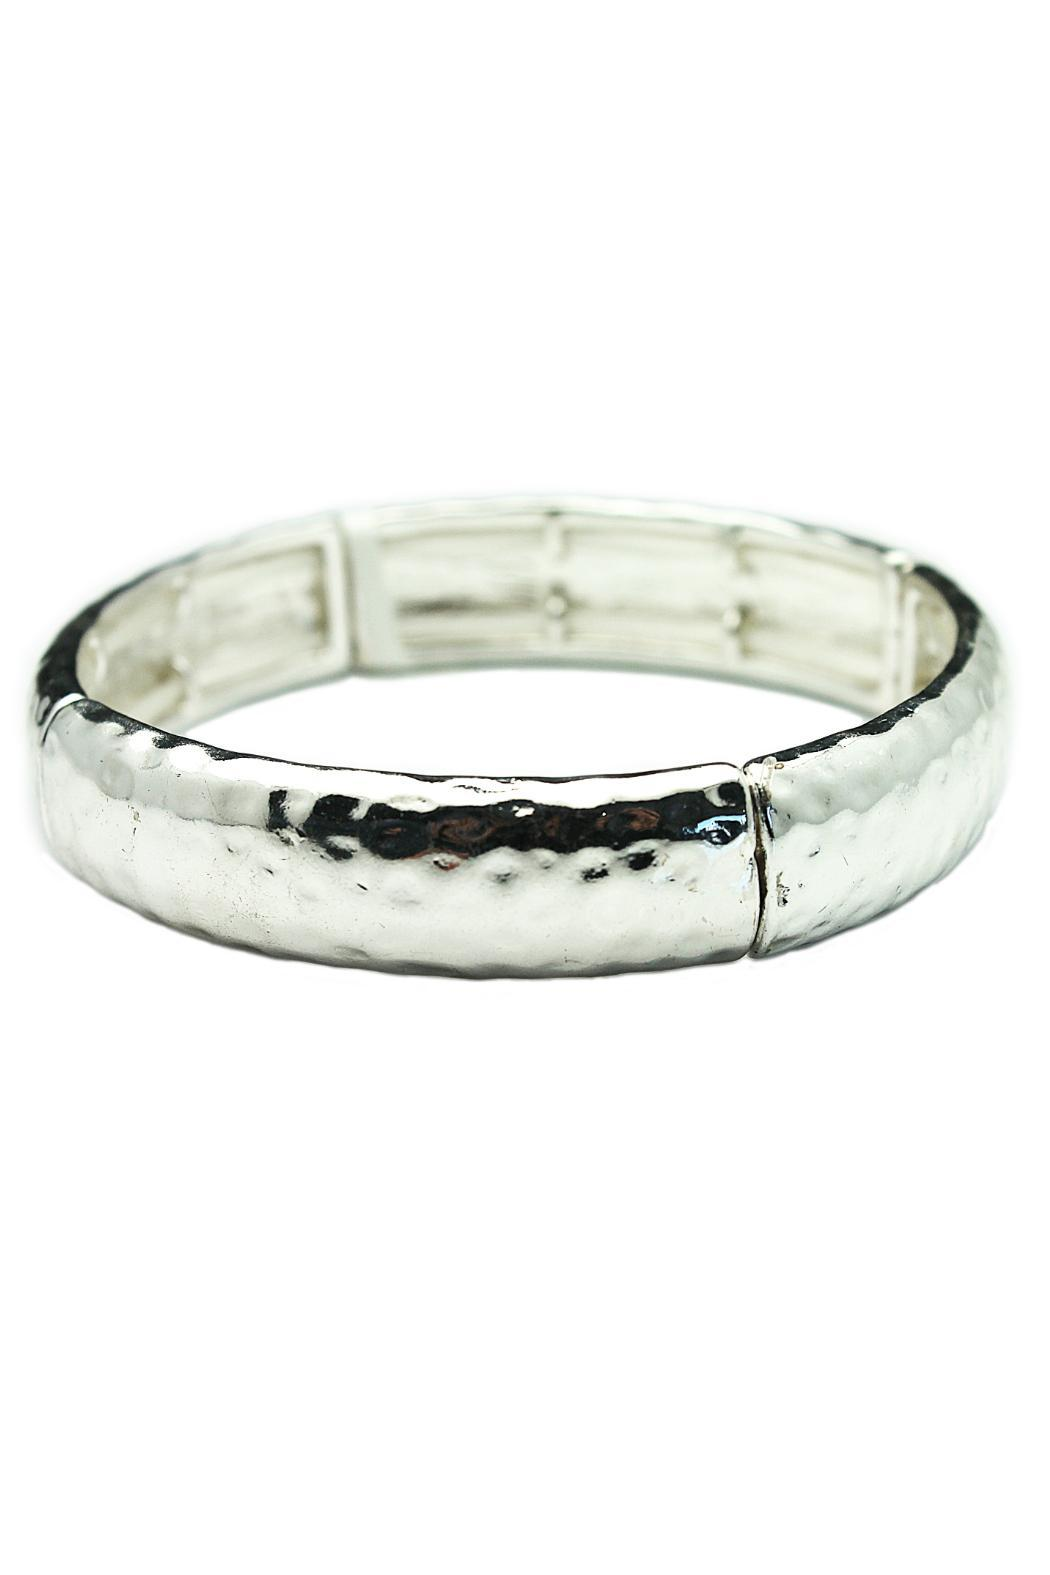 nurabella silver band bracelet from new hshire by